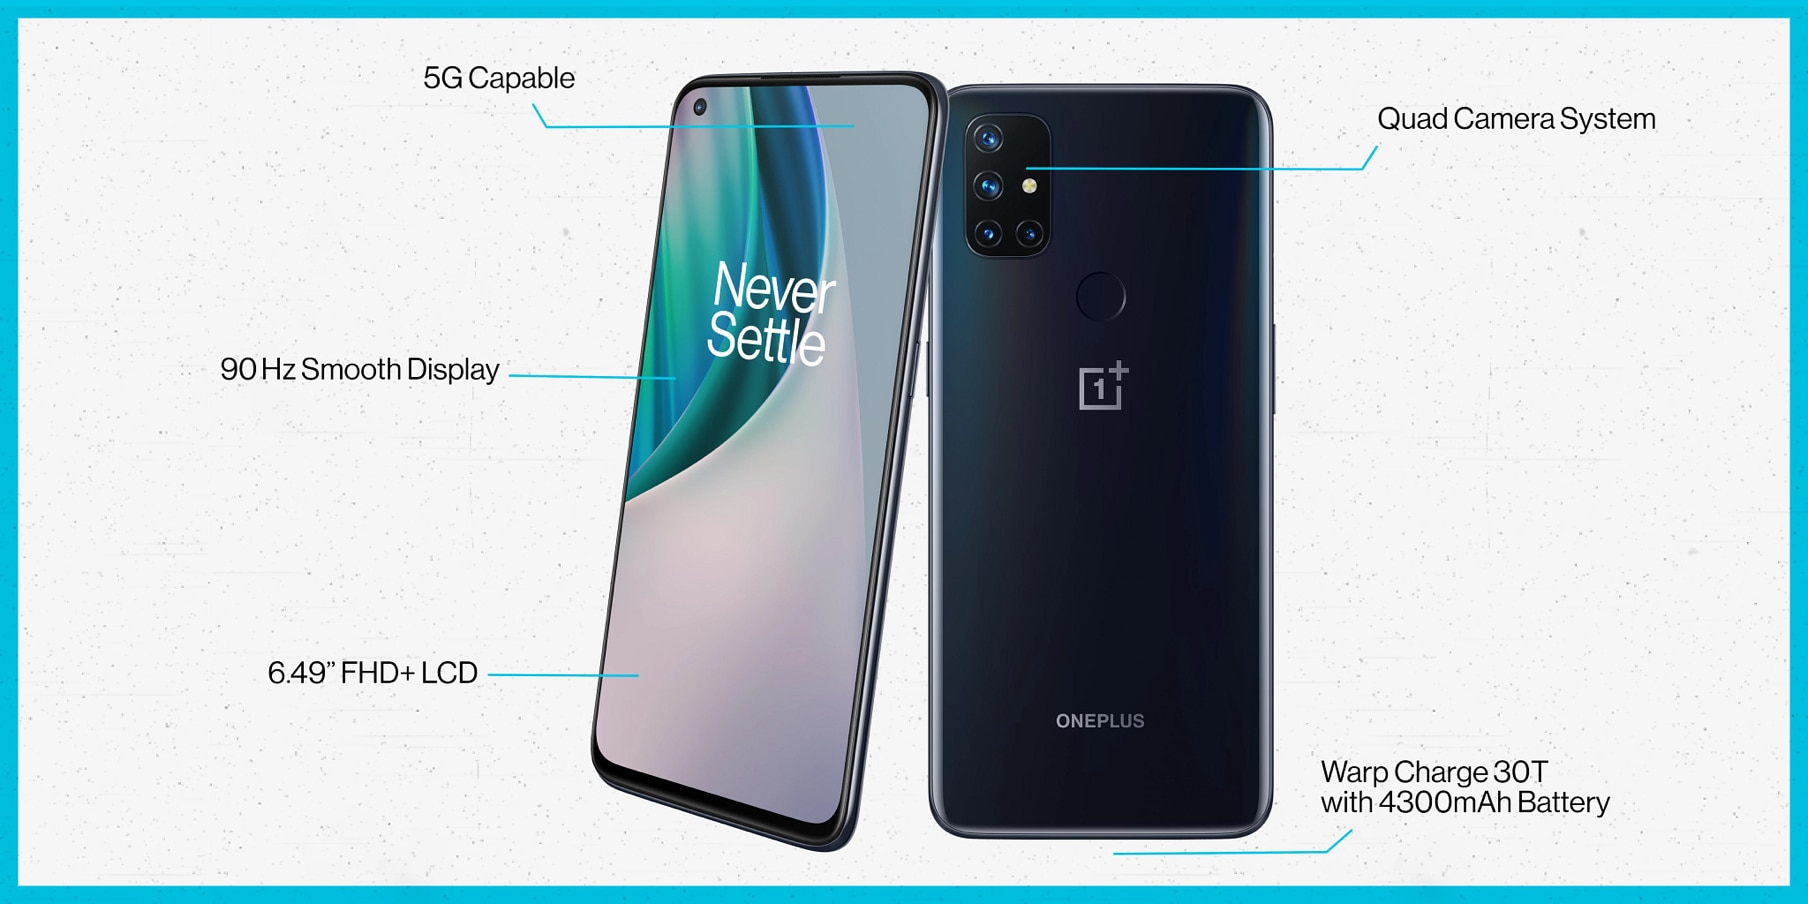 The OnePlus N10 5G is 5G capable and features a quad-camera system, 90 Hz smooth display, 6.49 inch FHD+ LCD screen, and Warp Charge 30T with 4300 mAh battery.